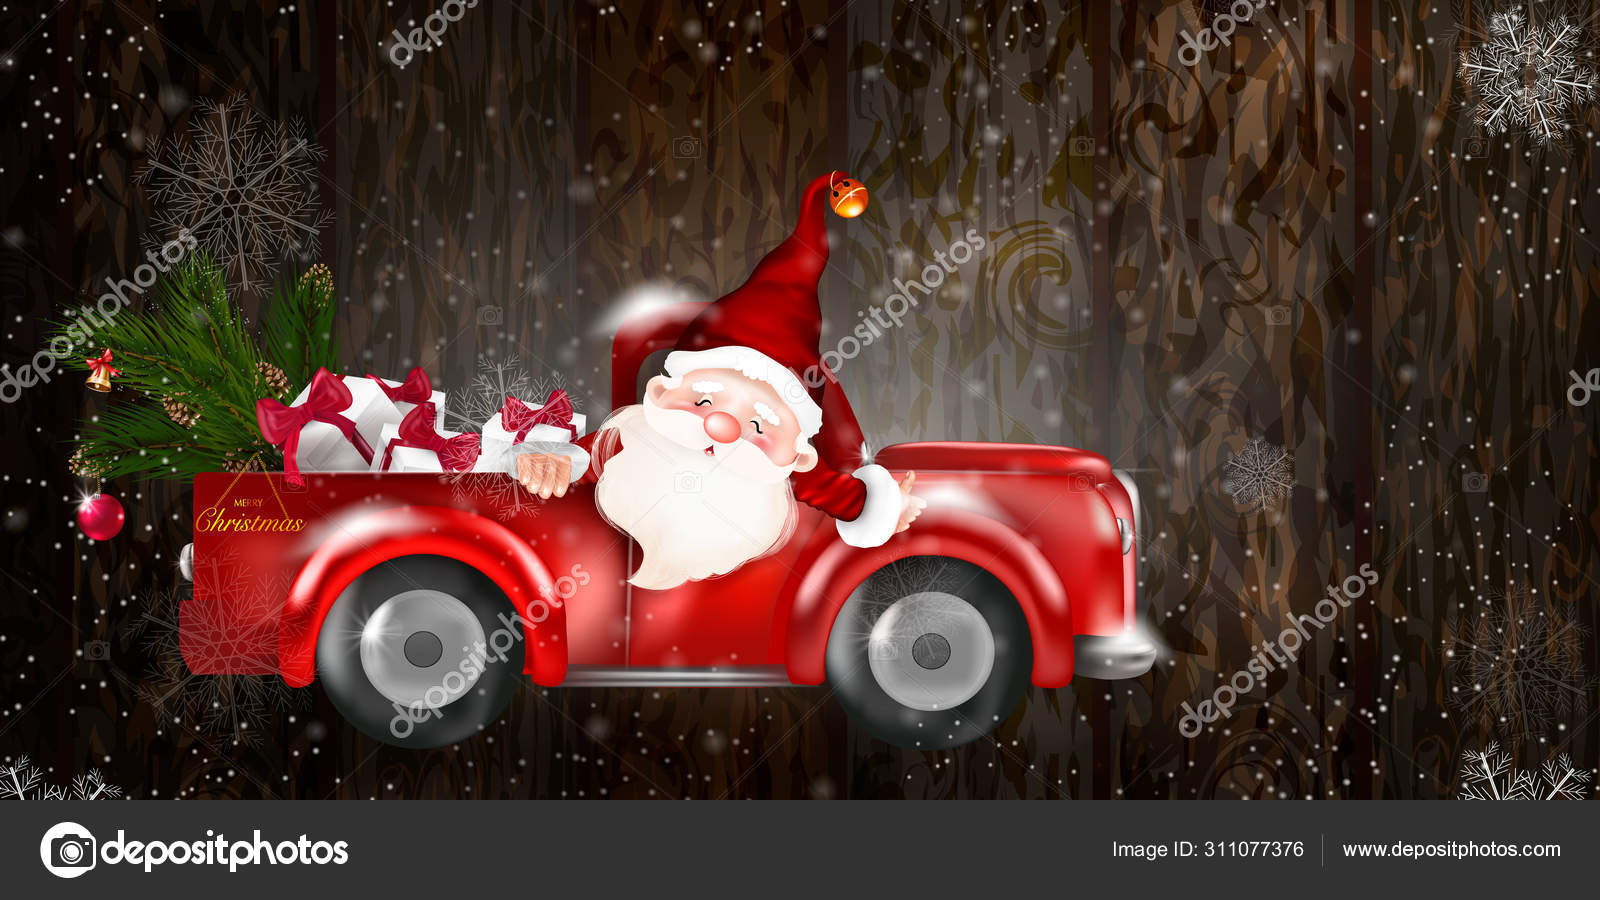 depositphotos 311077376 stock illustration merry christmas happy new year